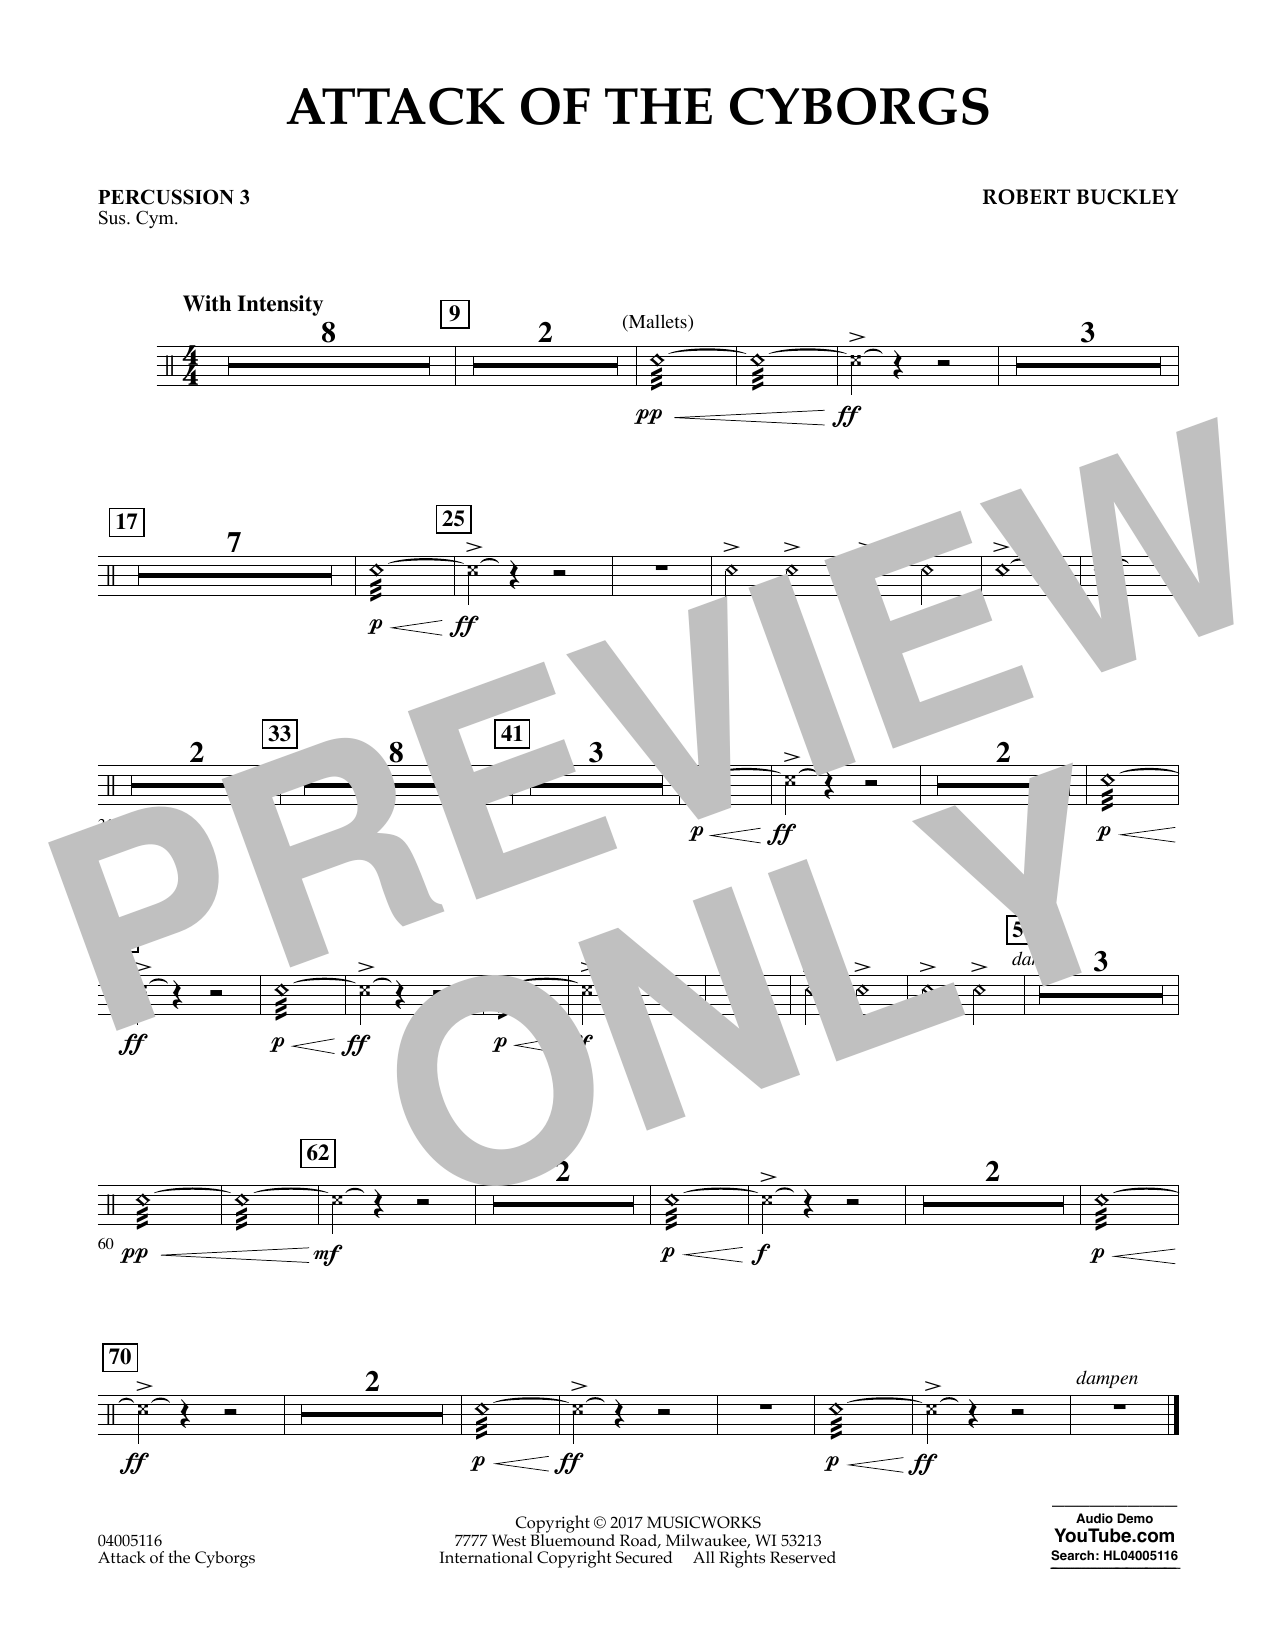 Attack of the Cyborgs - Percussion 3 Sheet Music